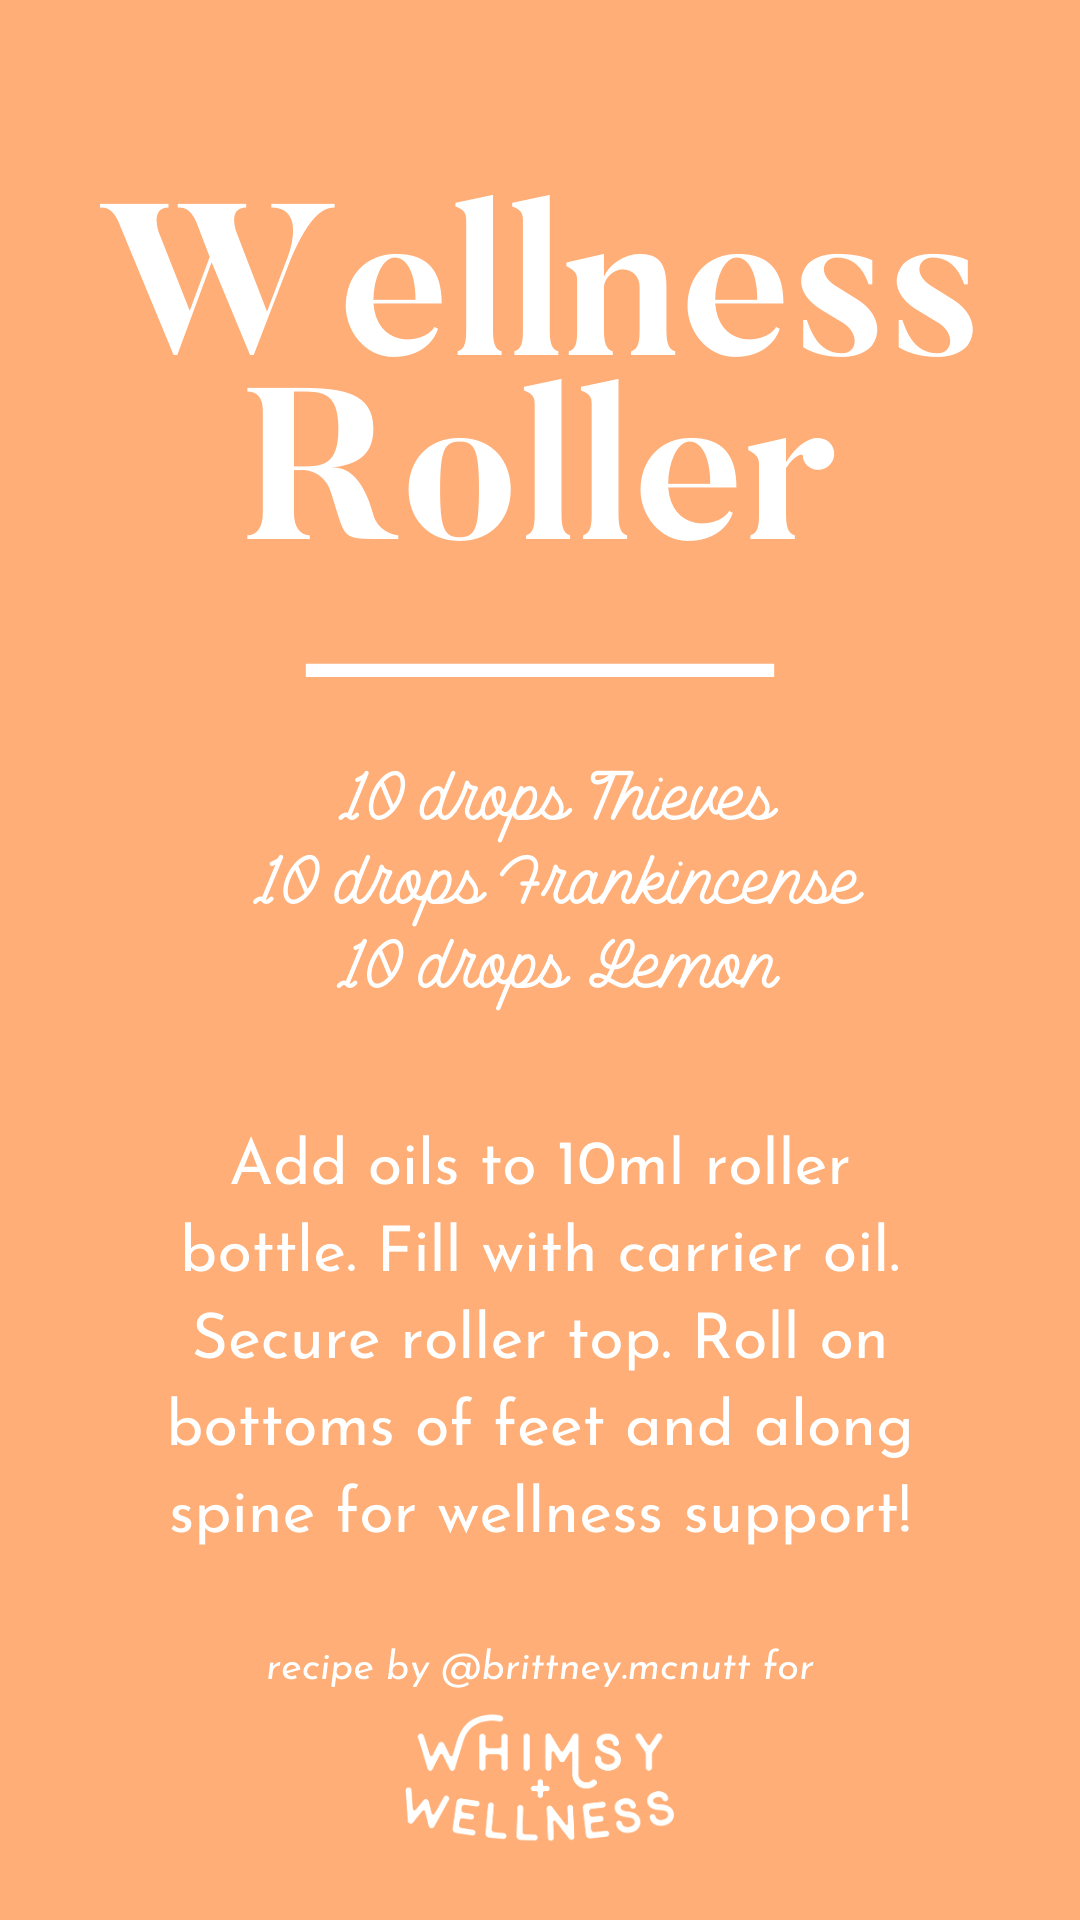 Wellness roller recipe blend using Young Living essential oils